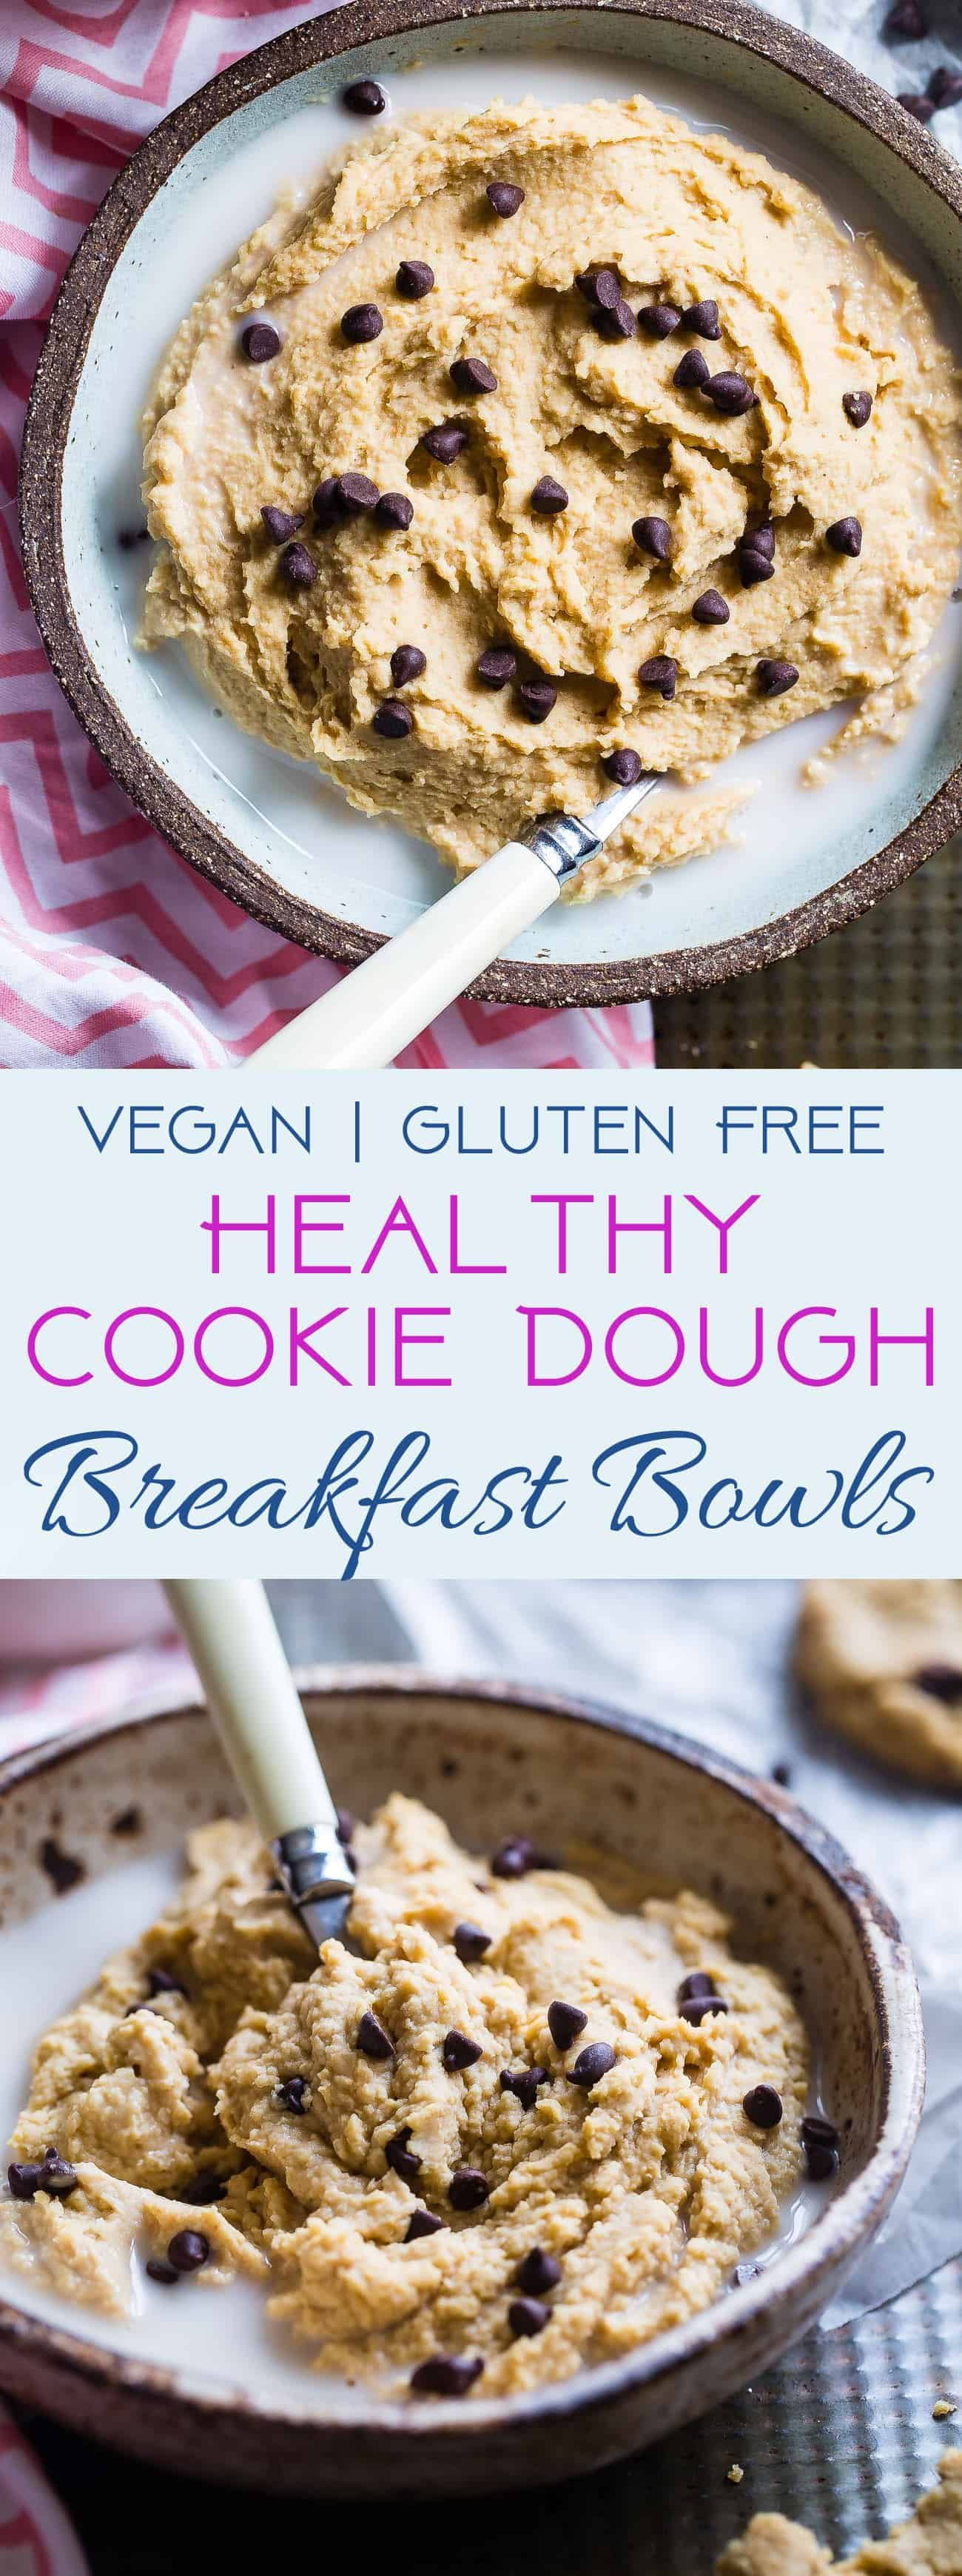 #healthycookiedough #foodfaithfitness #glutengraindairy #foodfaithfitn #cookiedough #glutenfree #makeahead #breakfast #dairyfree #friendly #healthy #protein #cookie #tasted #eatingVegan Cookie Dough Breakfast Bowls - Wake up to cookie dough for breakfast! Make-ahead friendly, gluten/grain/dairy free and packed with protein! Eating a healthy breakfast never tasted so good! | | Vegan Cookie Dough Breakfast Bowls - Wake up to cookie dough for breakfast! Make-ahead friendly, gluten/grain/dair... #proteincookiedough